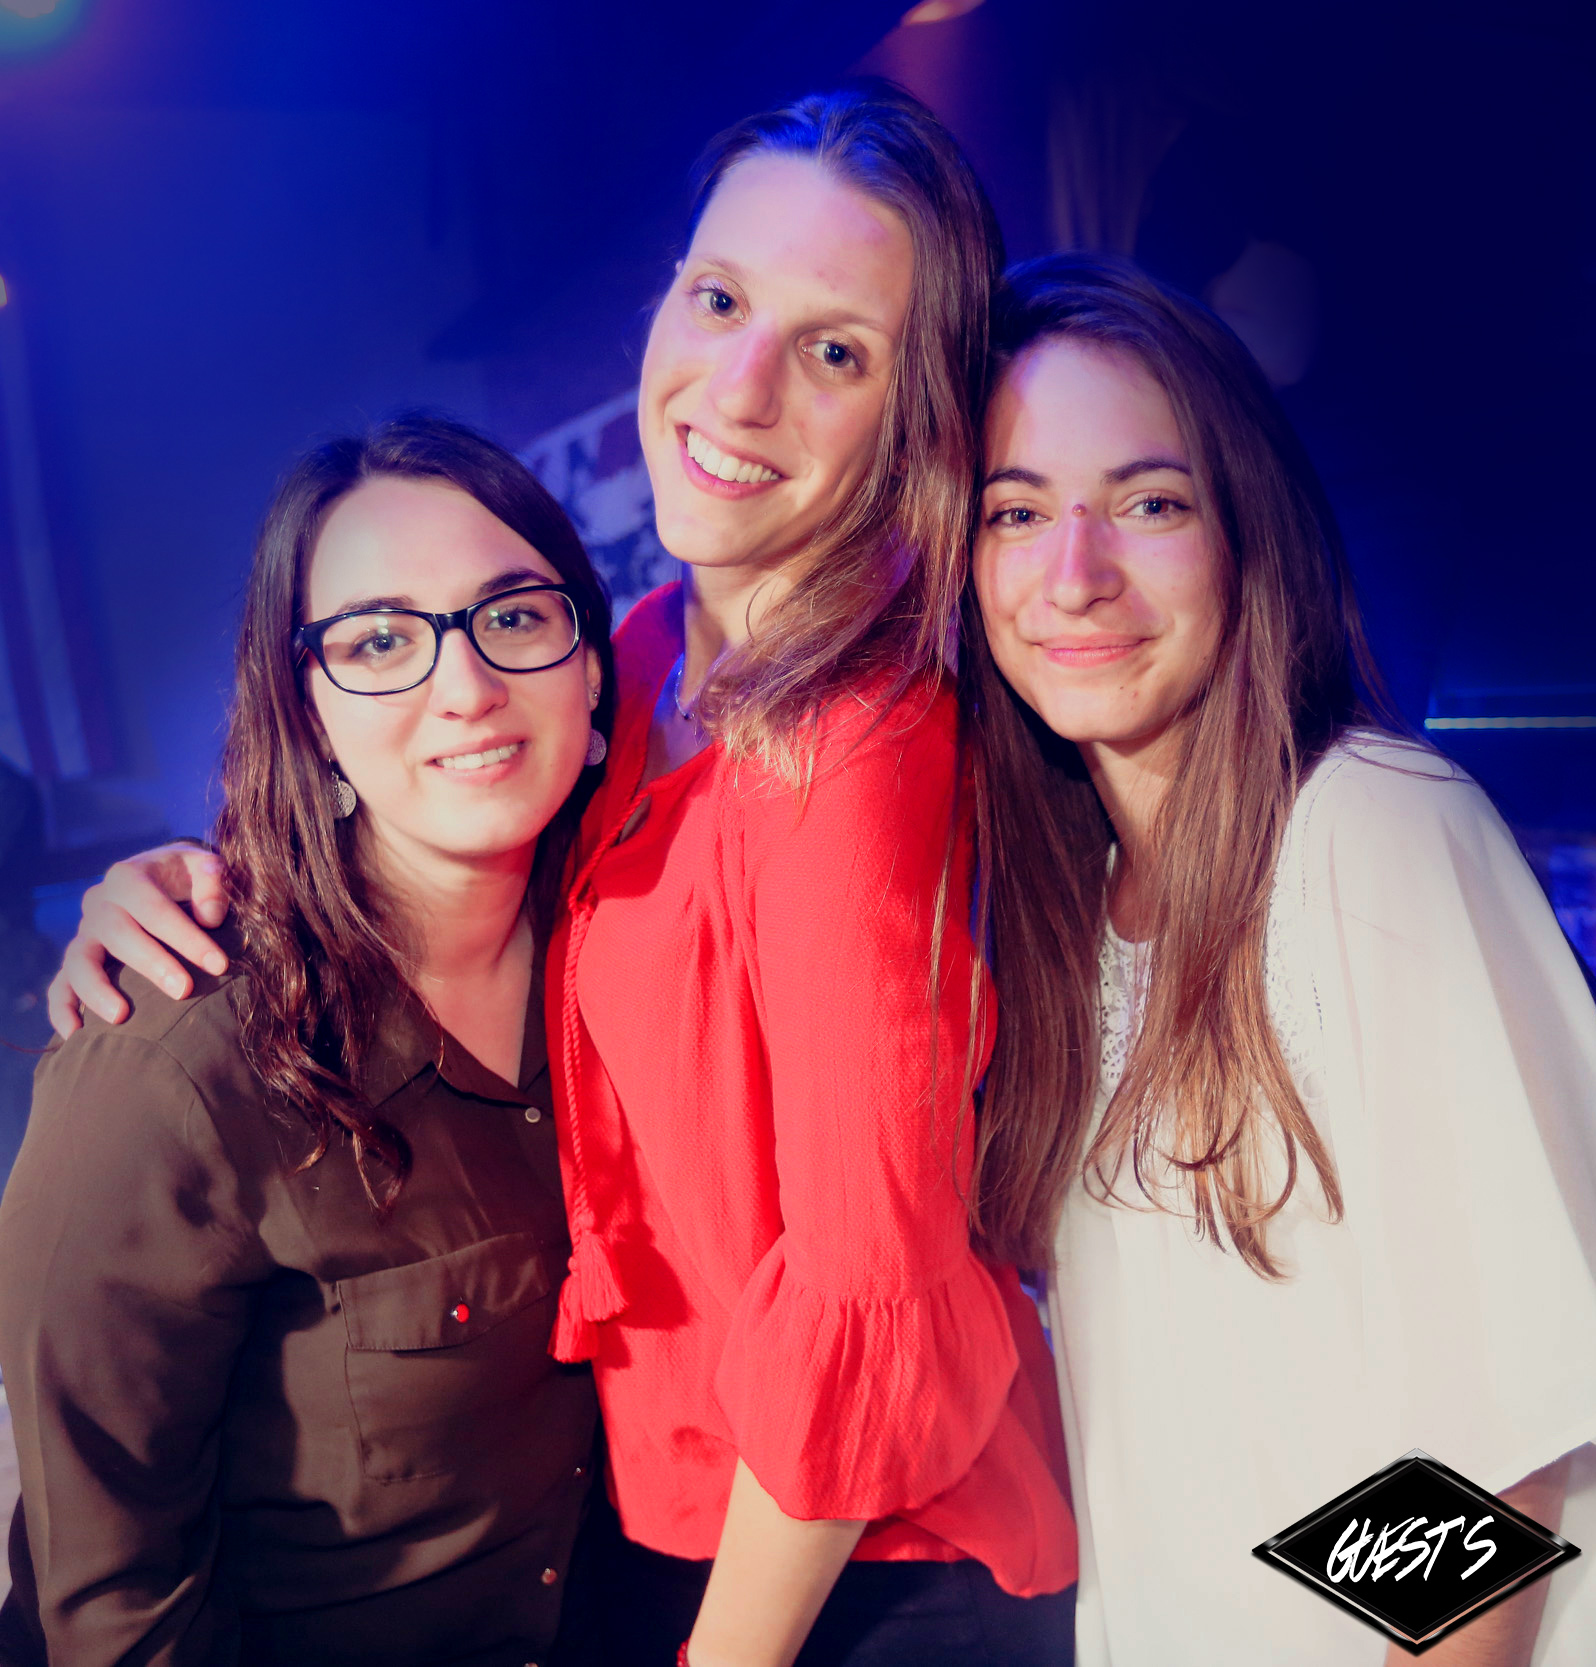 American Party by Campus Club - Jeudi 13 Avril 2017 - 19